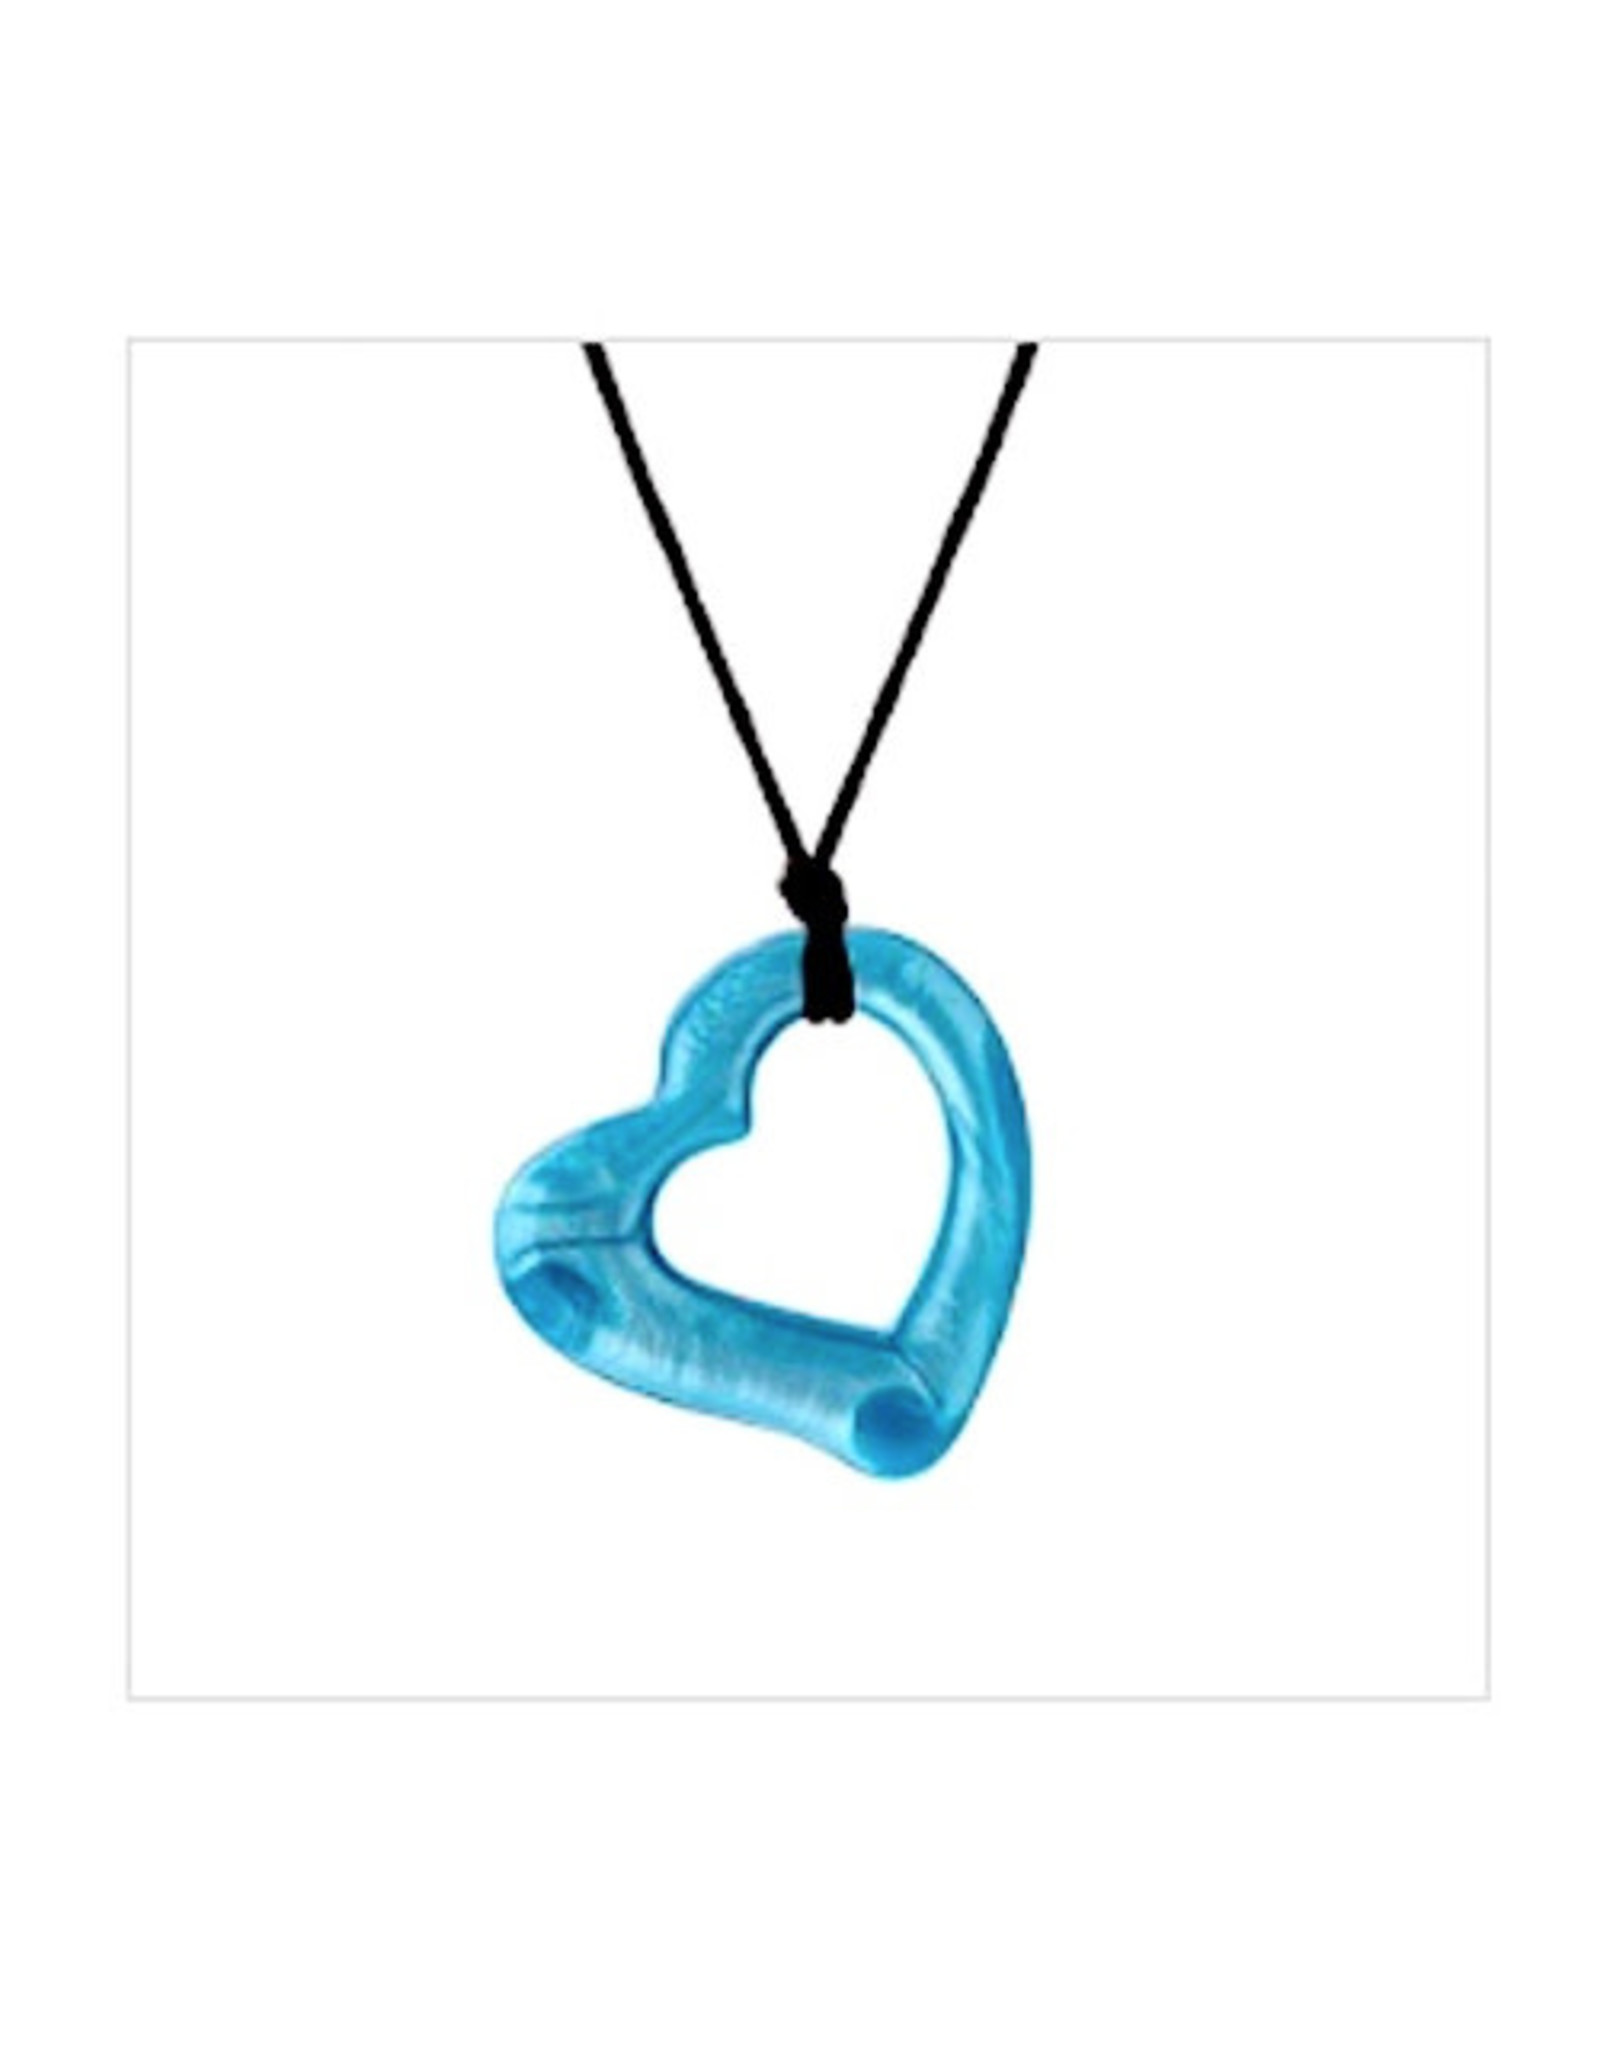 Chewigem Chewlery Heart  Necklace